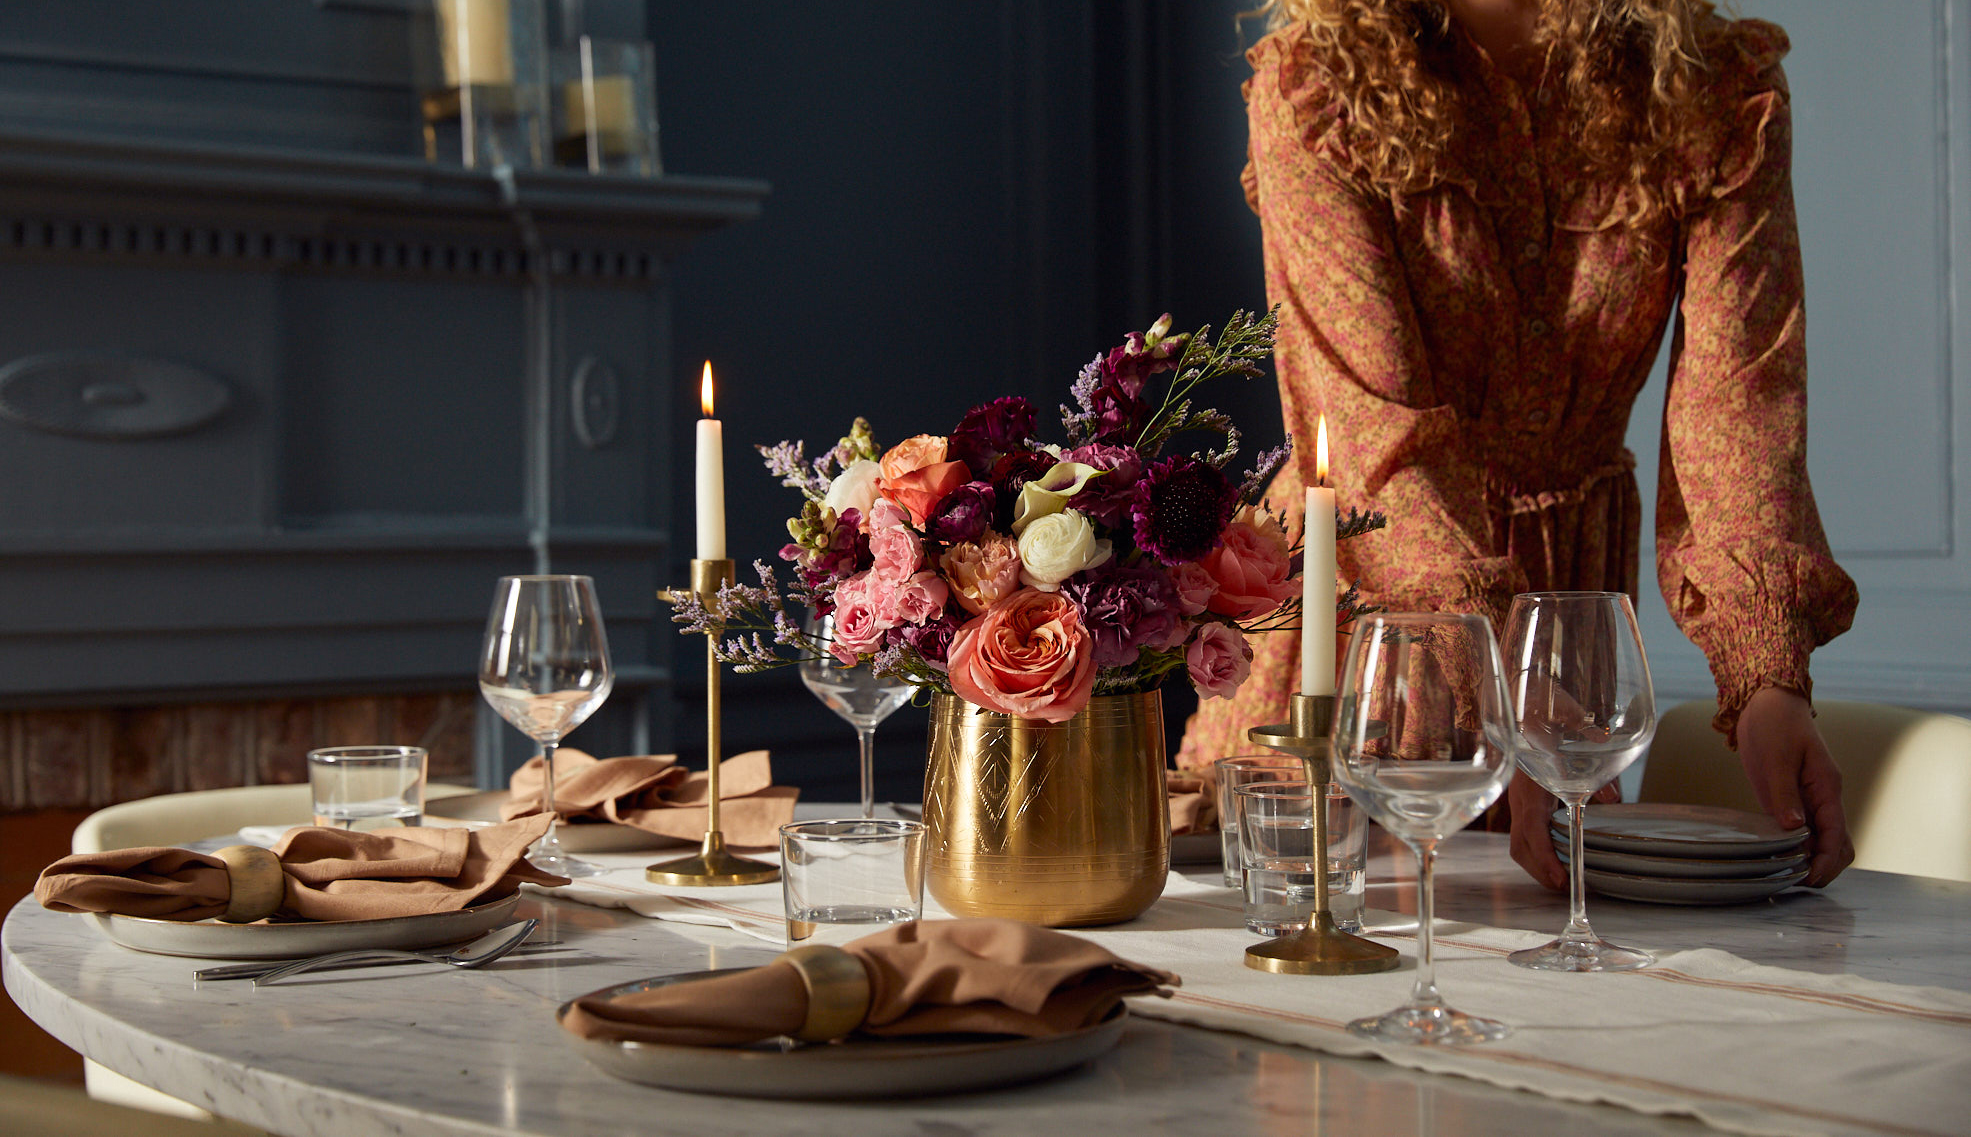 Fall table setting with fresh flowers perfect for entertaining